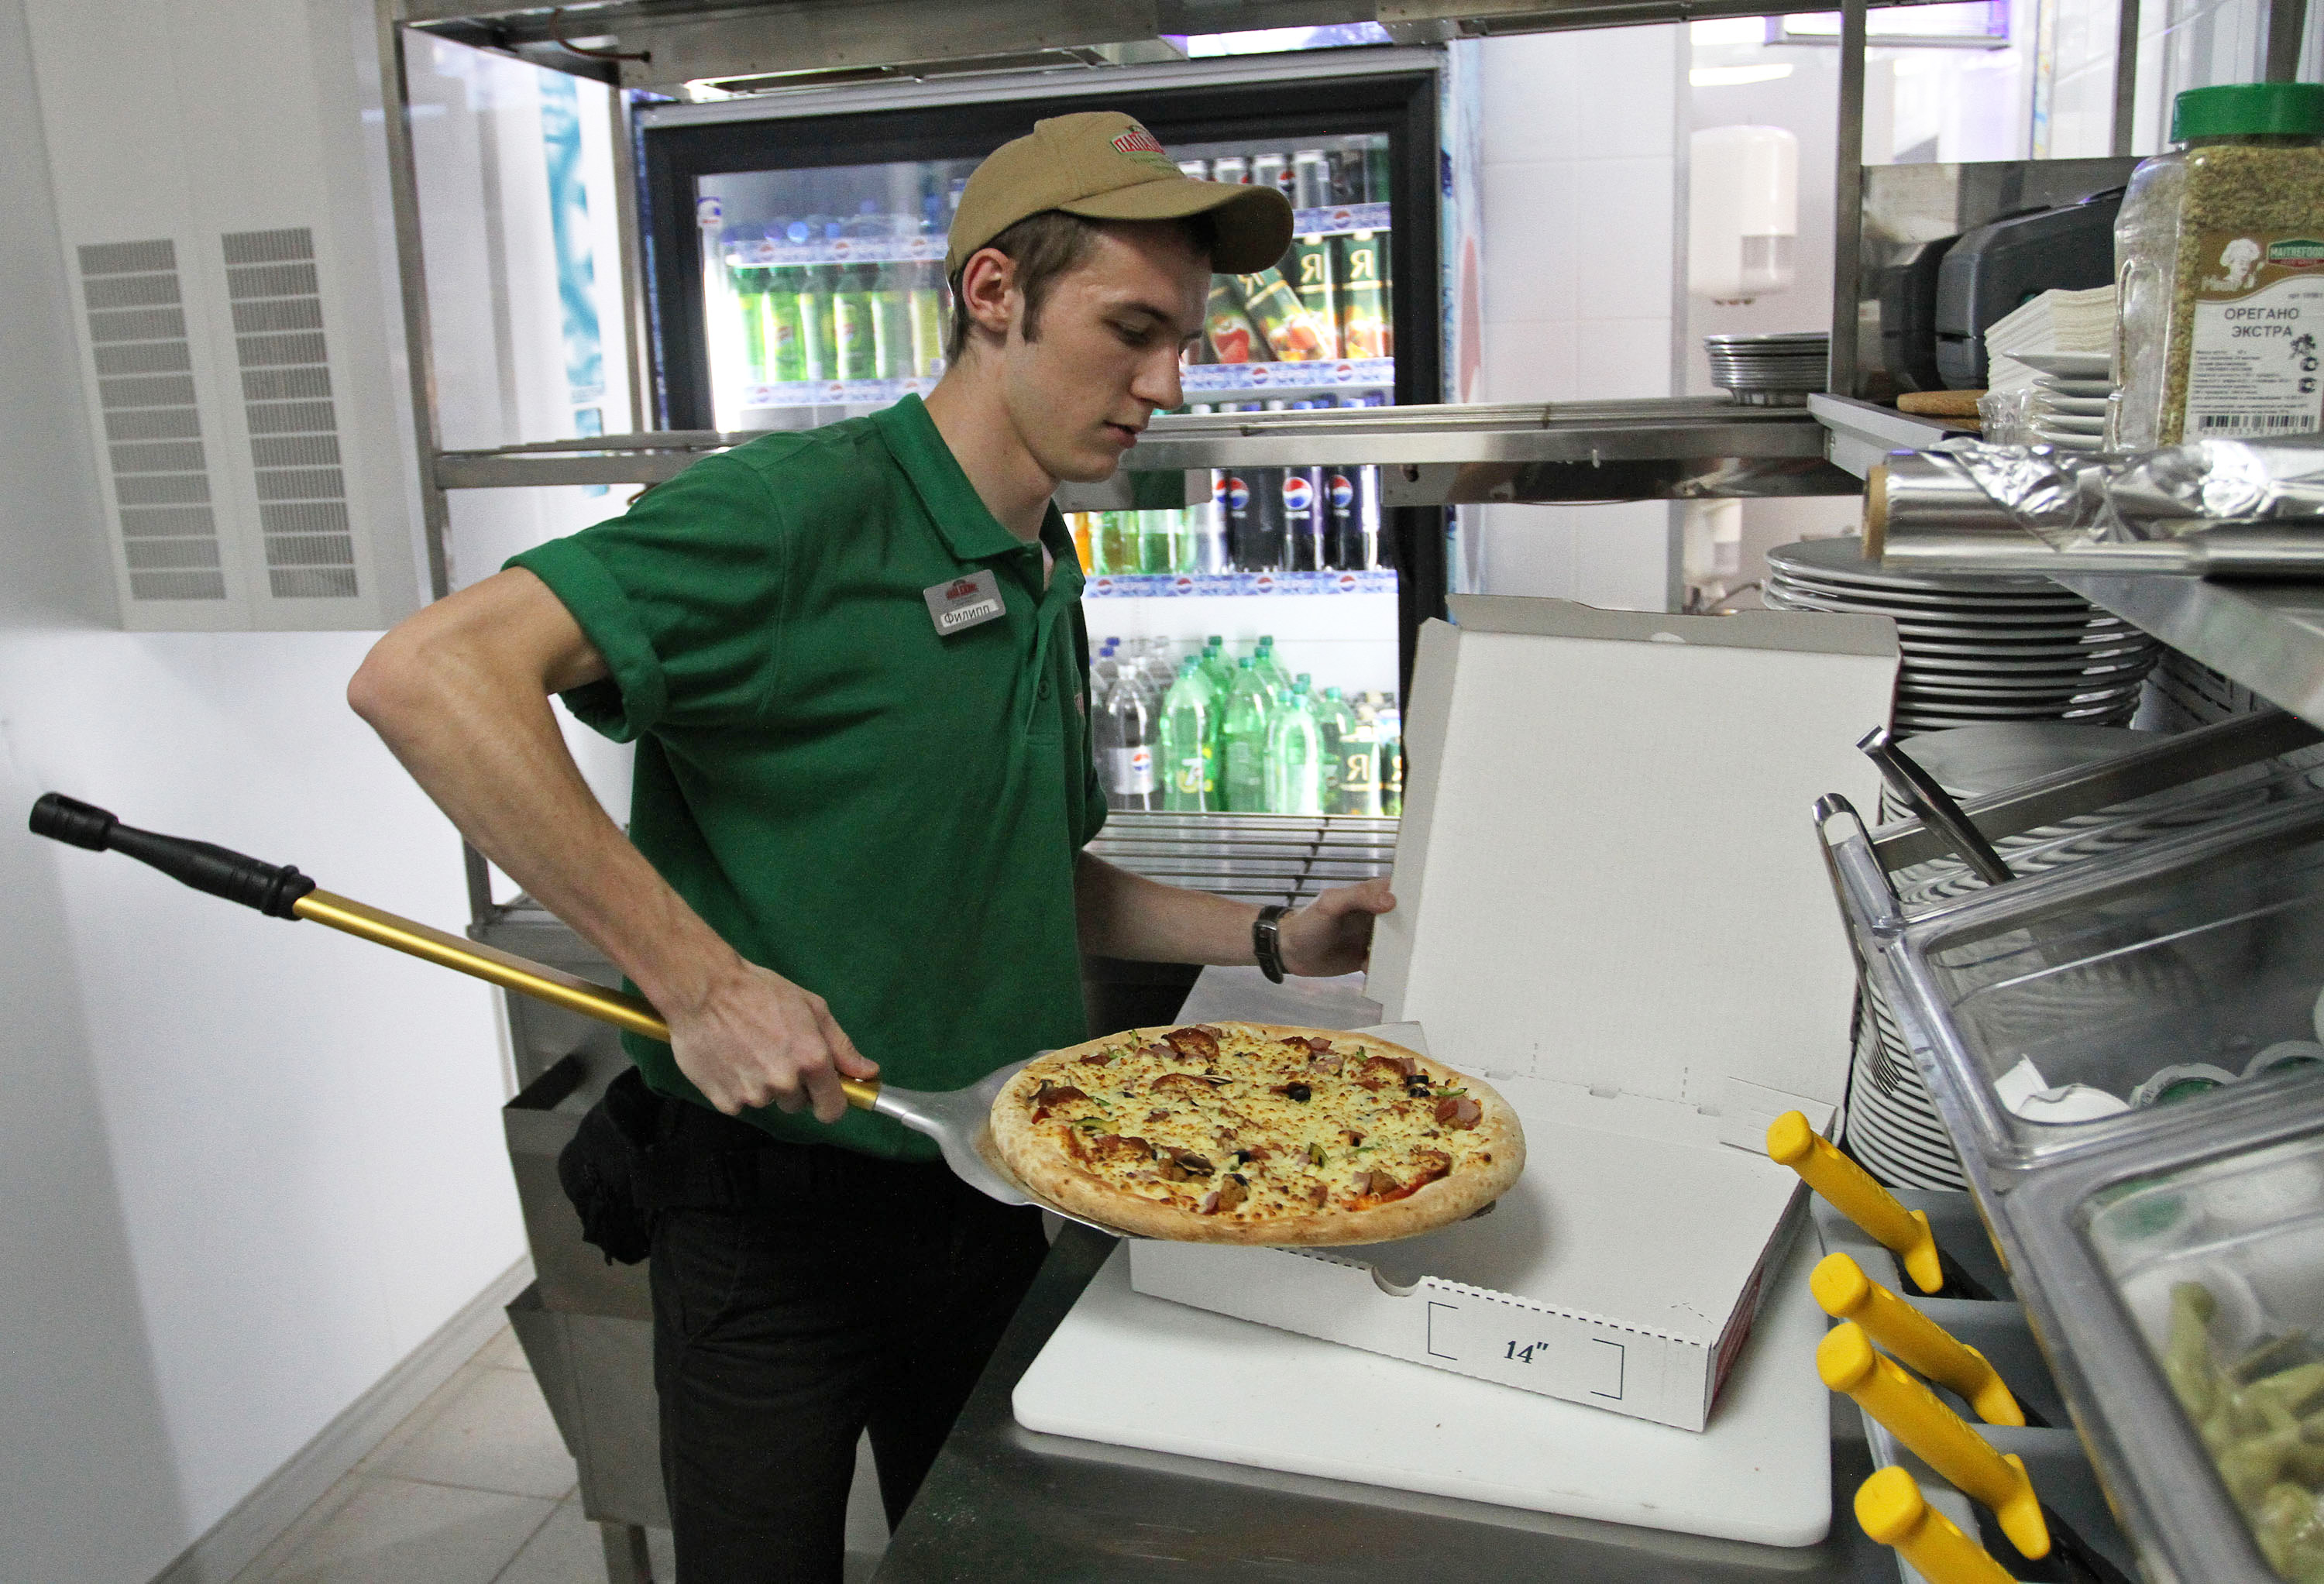 U.S. Fast Food Chains Expanding In Russia